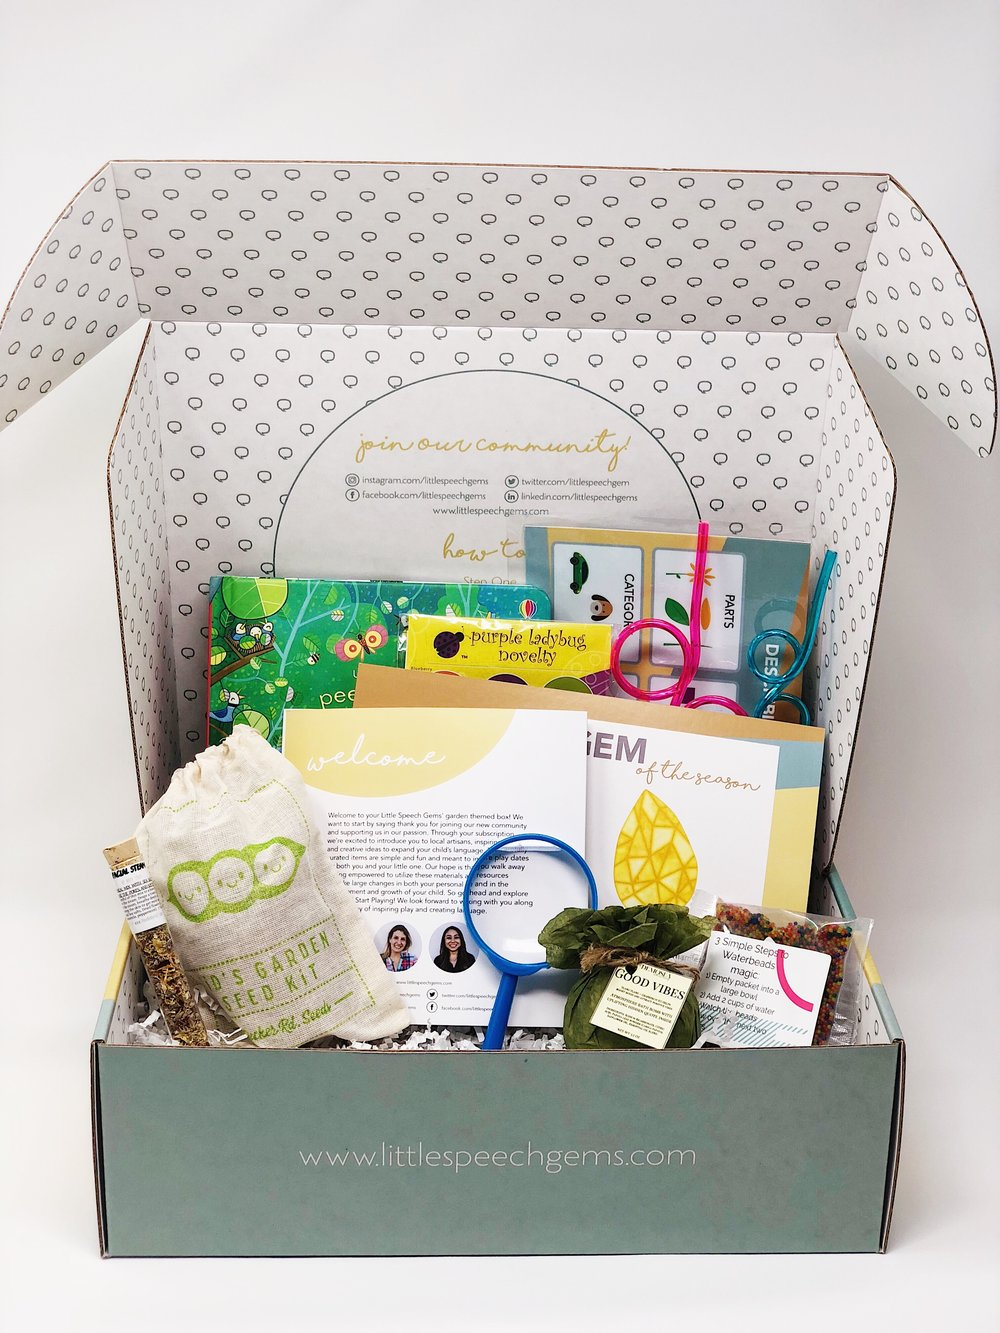 LITTLE SPEECH GEMS BOX - Do you feel like you are always living in survival mode? Let us help you grow and  thrive with these predetermined play date materials. This box is appropriate for kids with all language profiles who are in pre-kindergarten and kindergarten years. For just a small investment you can save yourself the hundreds of dollars it cost for speech language pathologists and tutors which can average from $100 to $200 an hour. With the expertise of certified speech-language pathologists, in each box you will always receive a:·      Personal care item·      Several themed-based activities/materials·      Book·      Calendar with simple daily language enriching activities·      Postcard with the